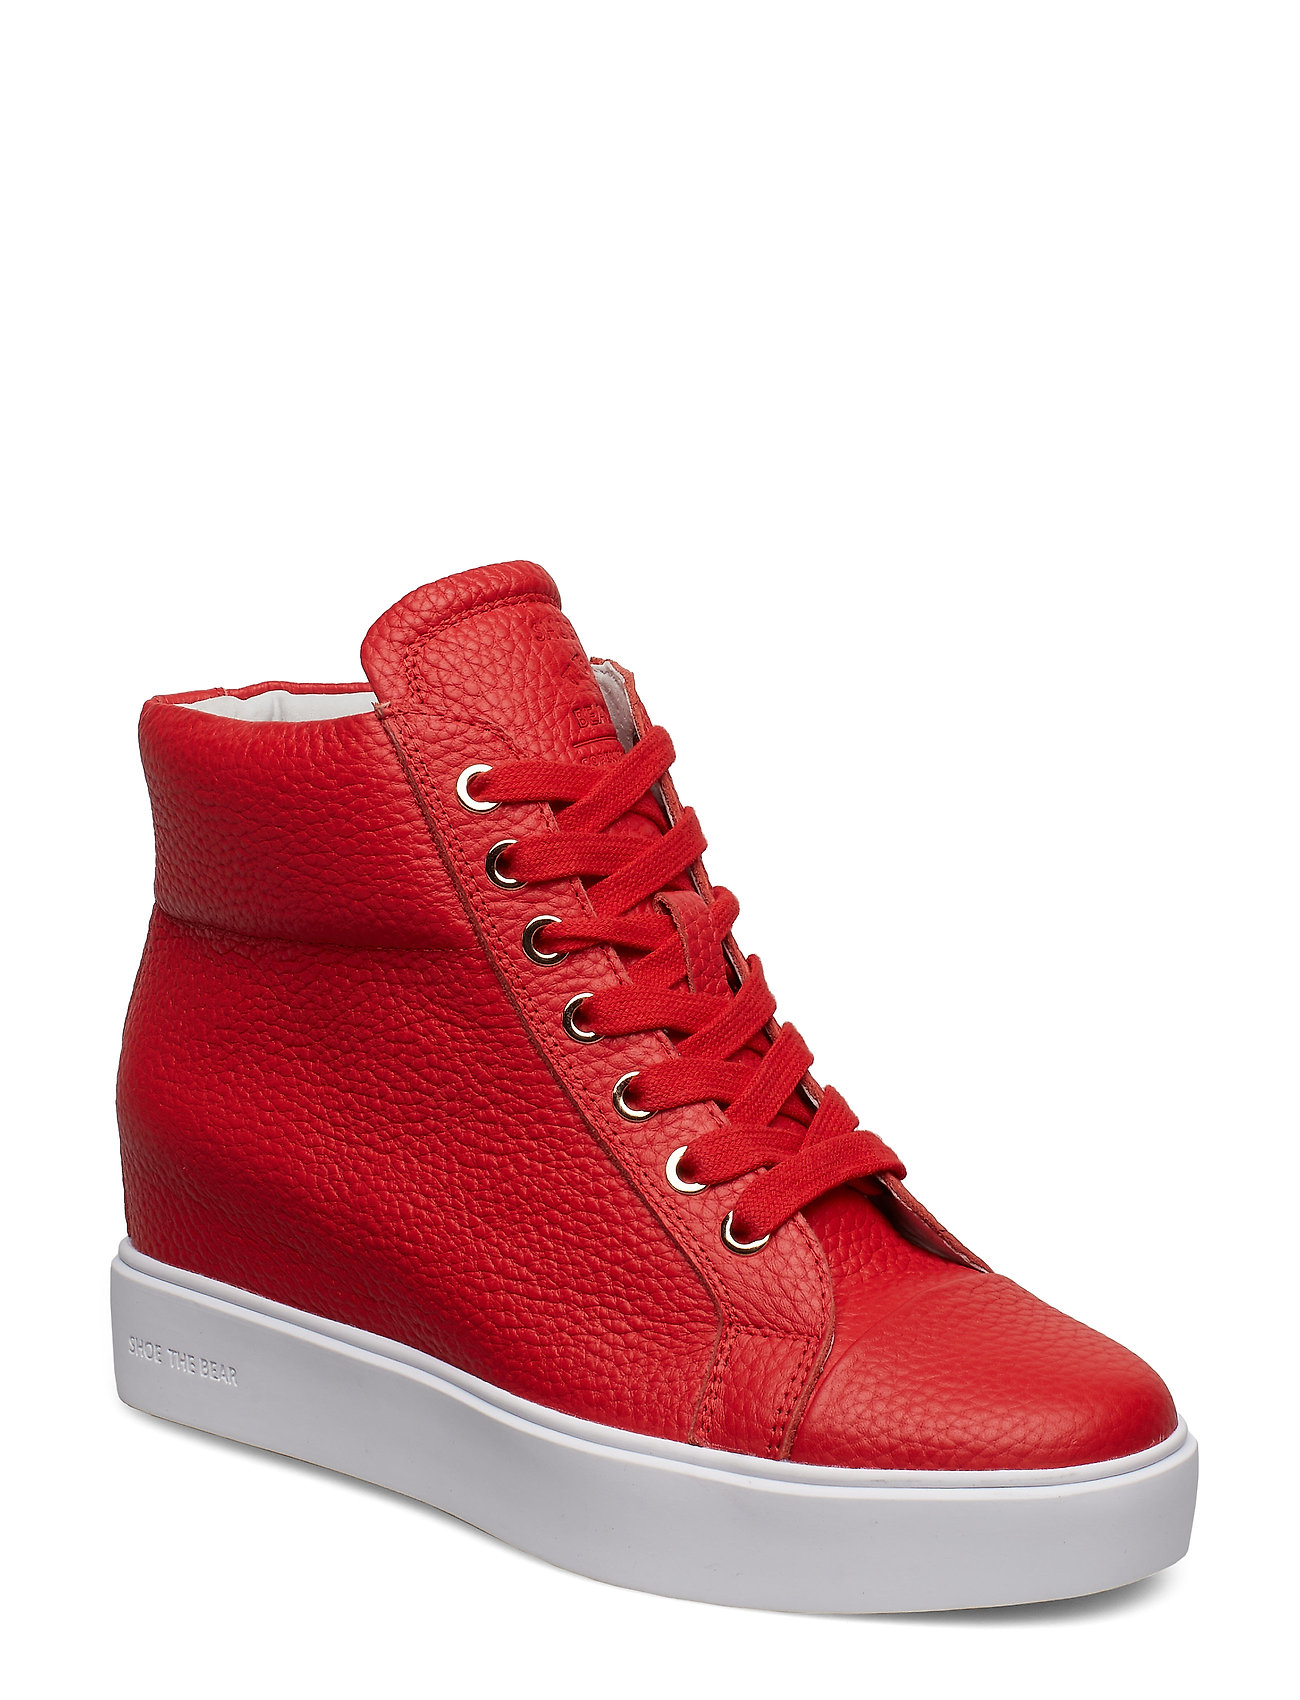 Shoe The Bear AVA HIGH TOP - RED